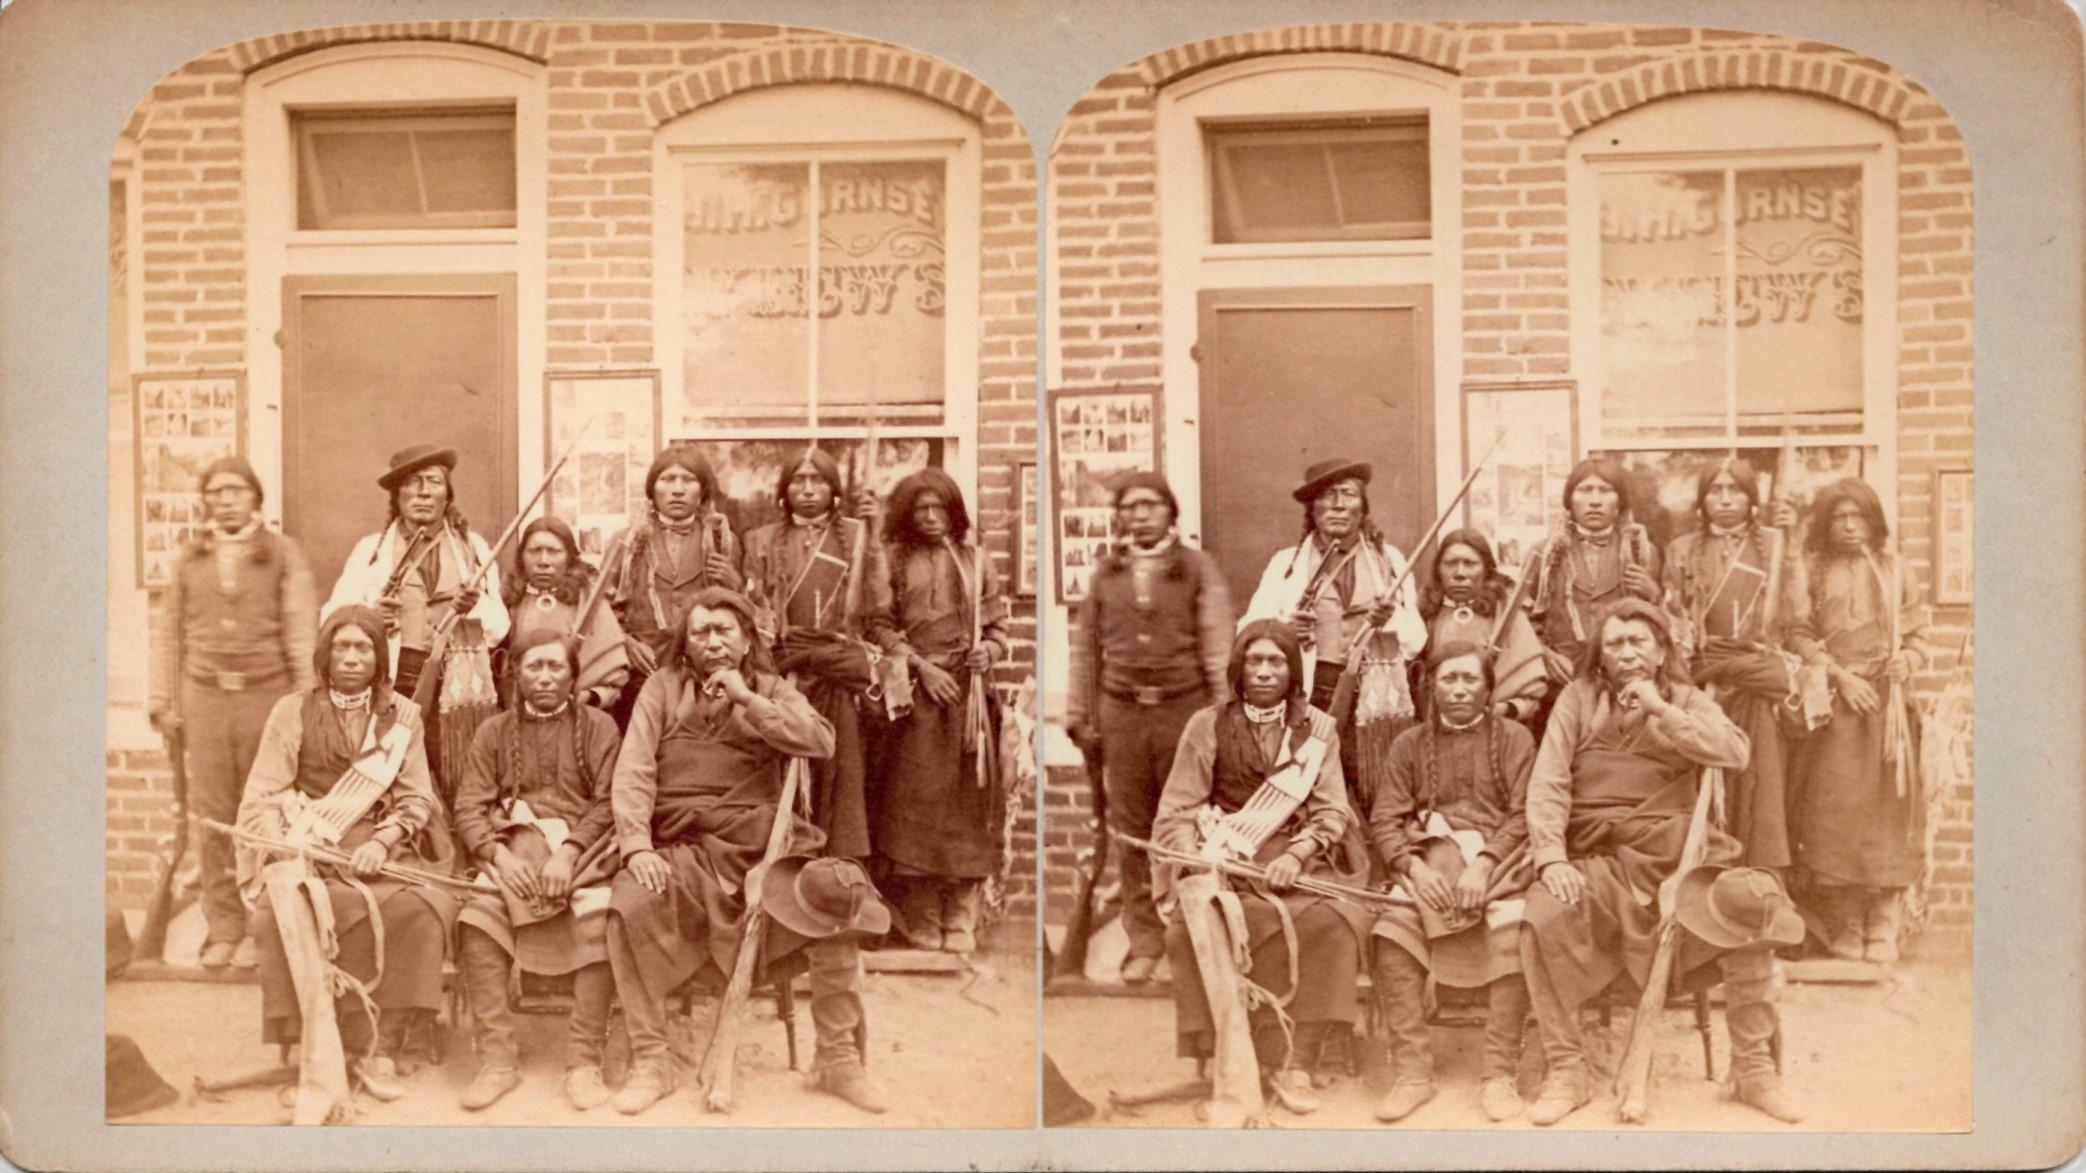 STEREOVIEW_GURNSEYS_ROCKY_MOUNTAIN_VIEWS_UTE_INDIANS_Gurnsey_Byron_H___Softcover